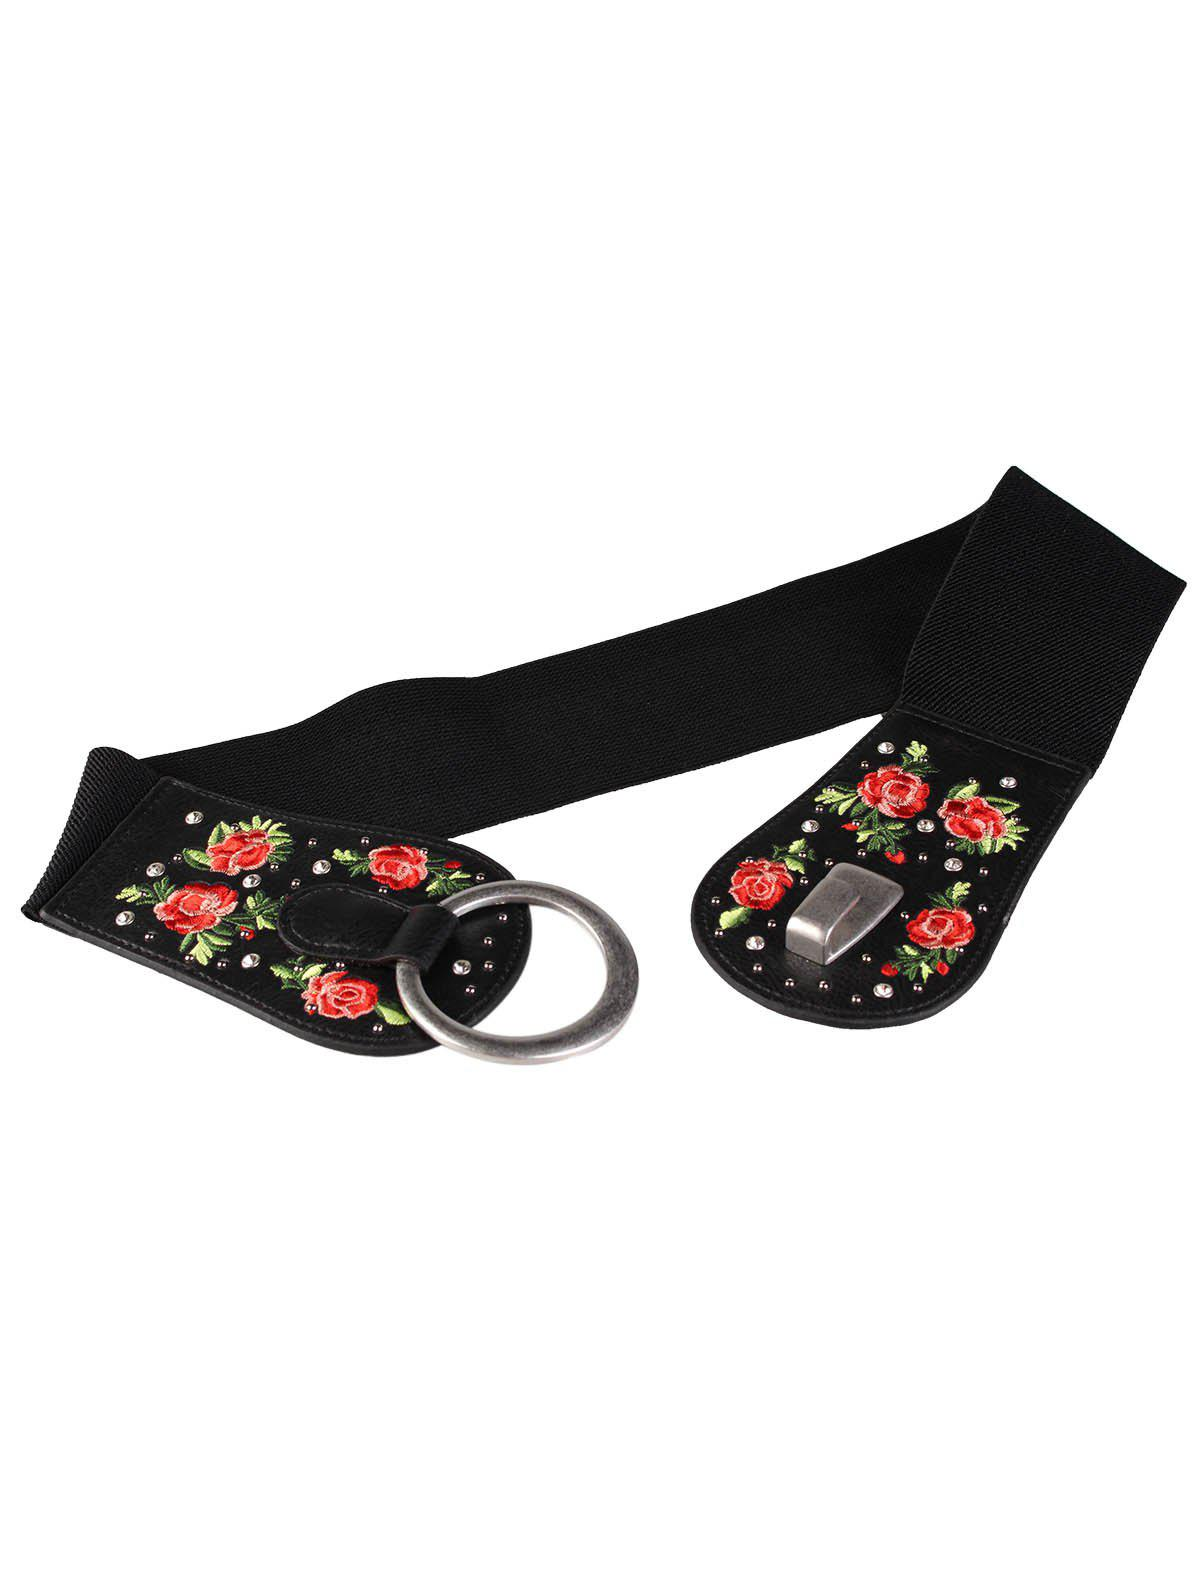 New Vintage Round Buckle Embellished Floral Embroidery Wide Waist Belt